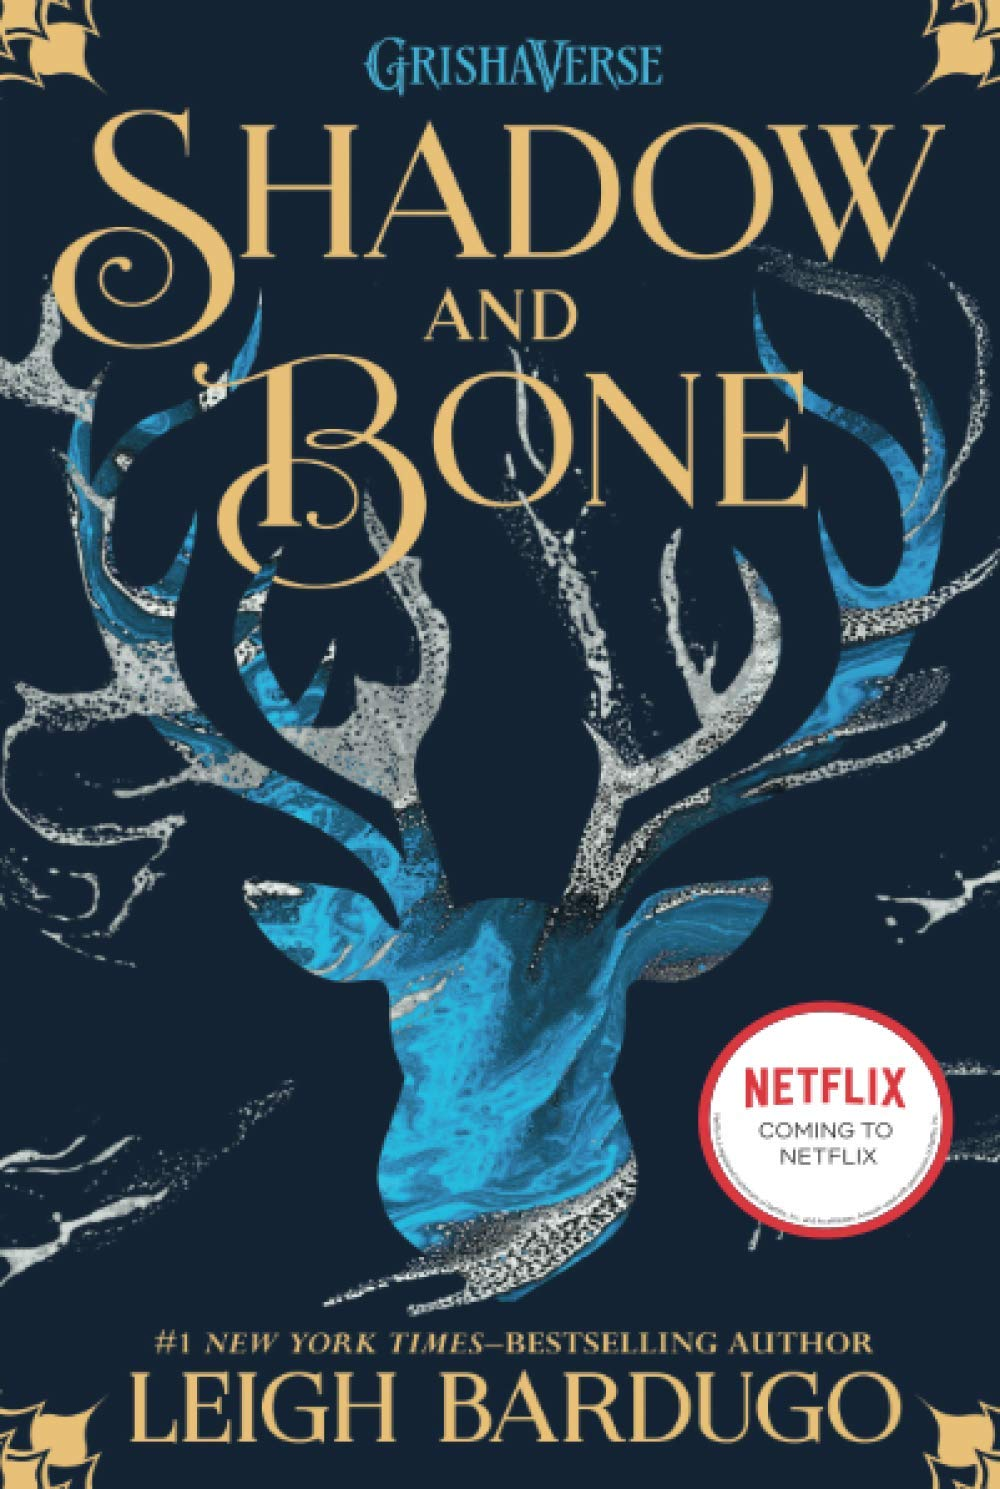 Buy Shadow and Bone: 01 (The Shadow and Bone Trilogy, 1) Book Online at Low  Prices in India | Shadow and Bone: 01 (The Shadow and Bone Trilogy, 1)  Reviews & Ratings - Amazon.in